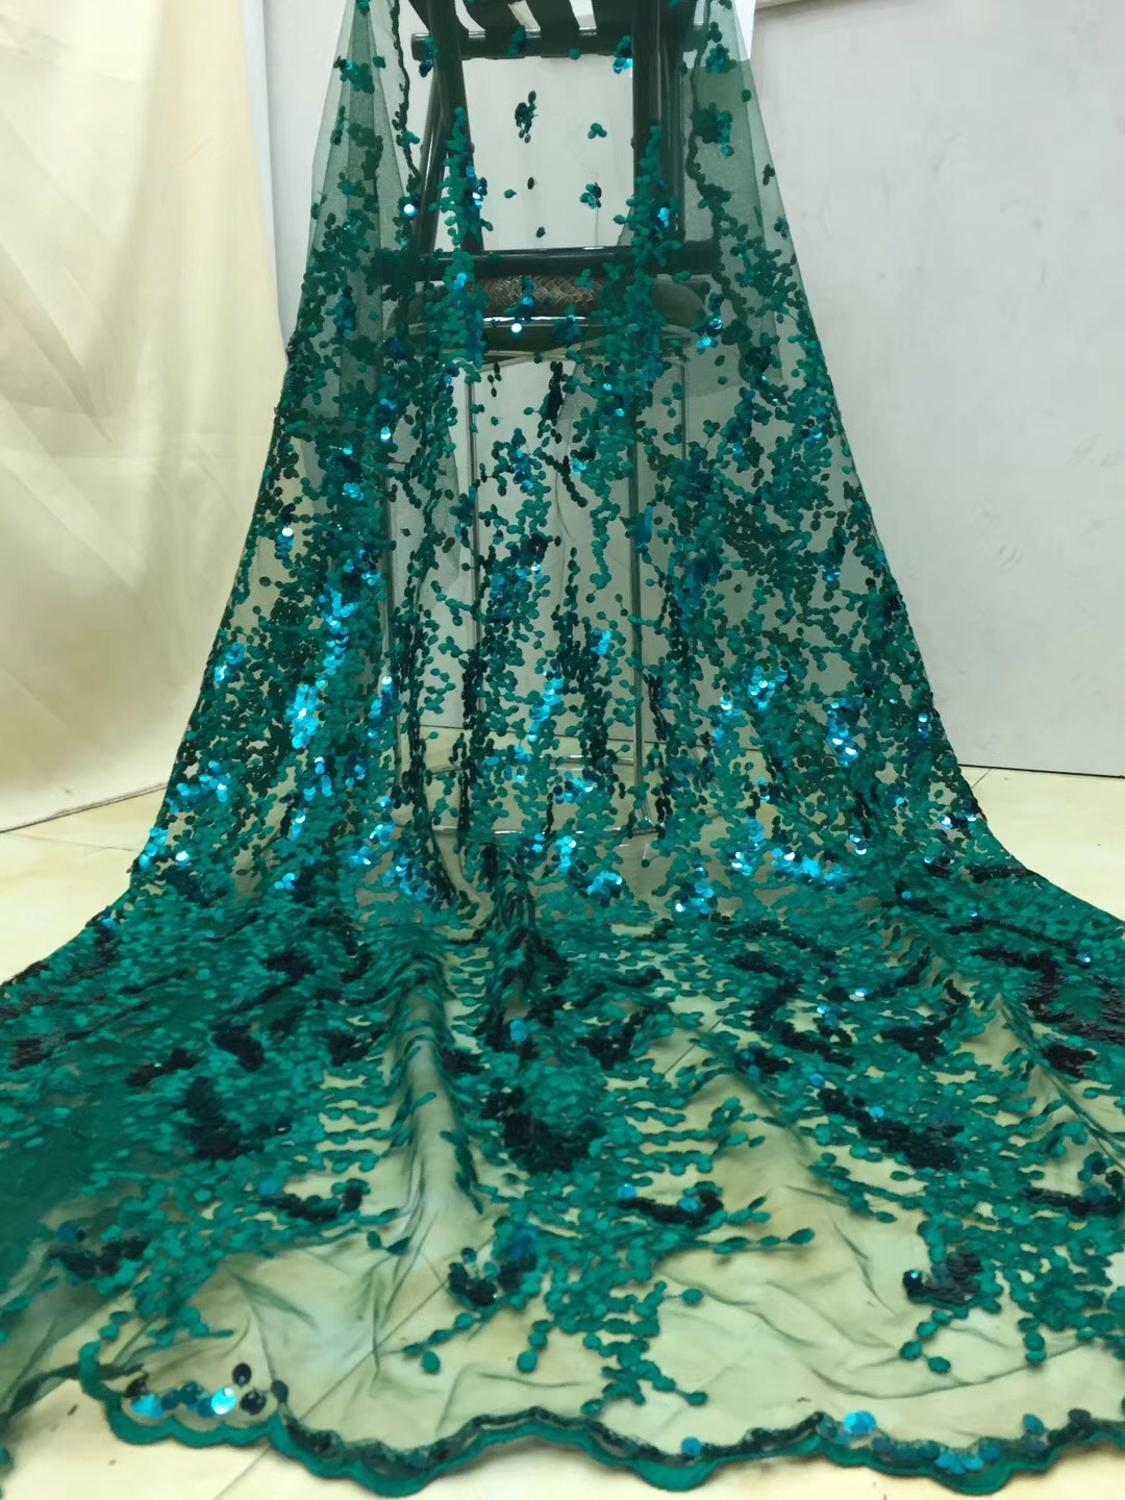 Tissu De La Reunion us $45.95 50% off|dark green french african lace fabric guipure sequined  cotton cord tulle nigerian tissu mesh india lace for wedding dress x7-in  lace